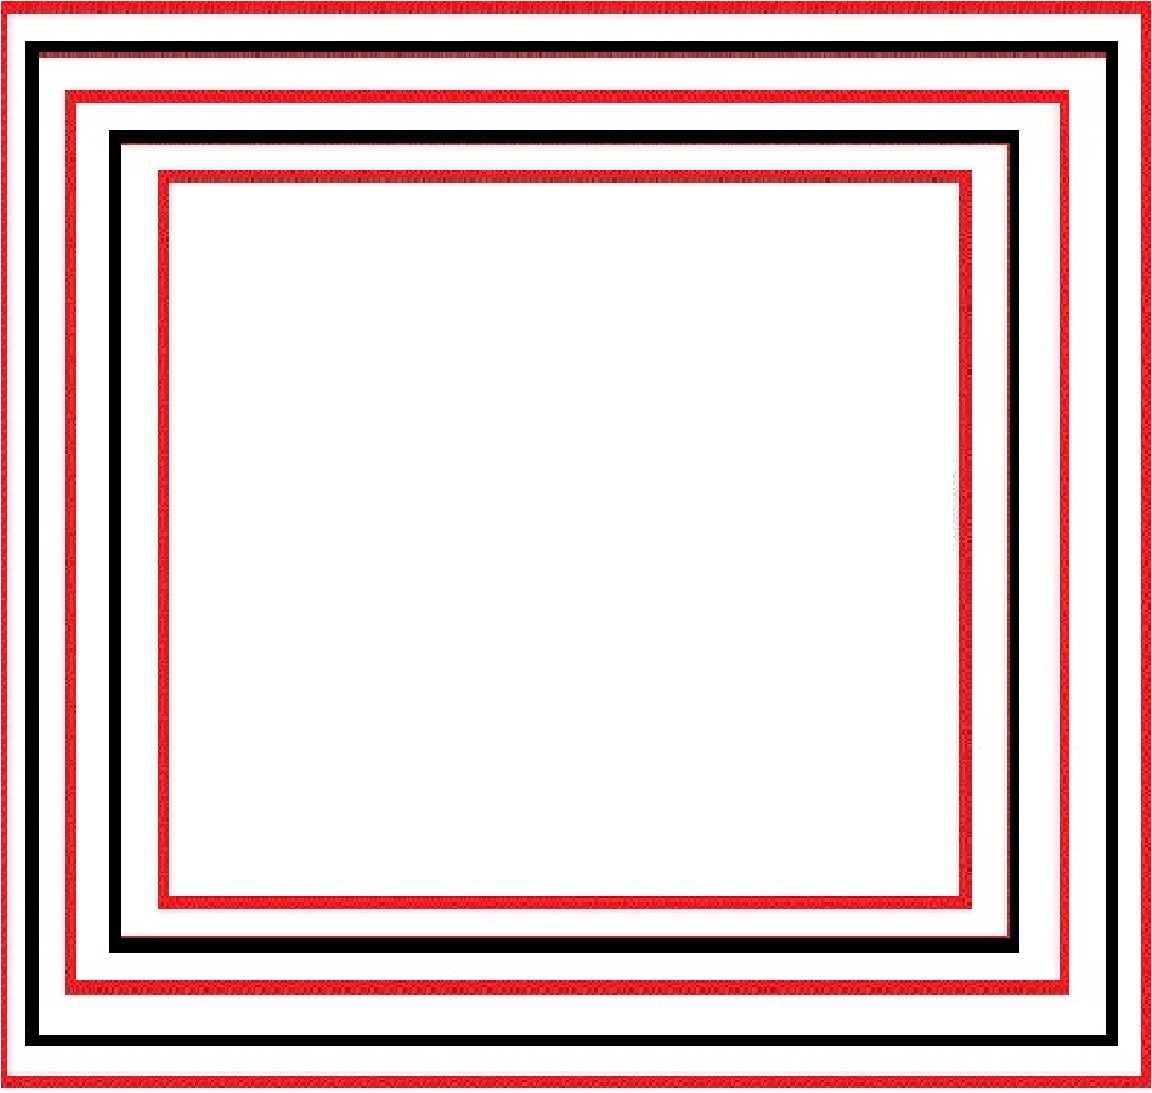 Basketball Borders And Frames | Clipart Panda - Free Clipart Images